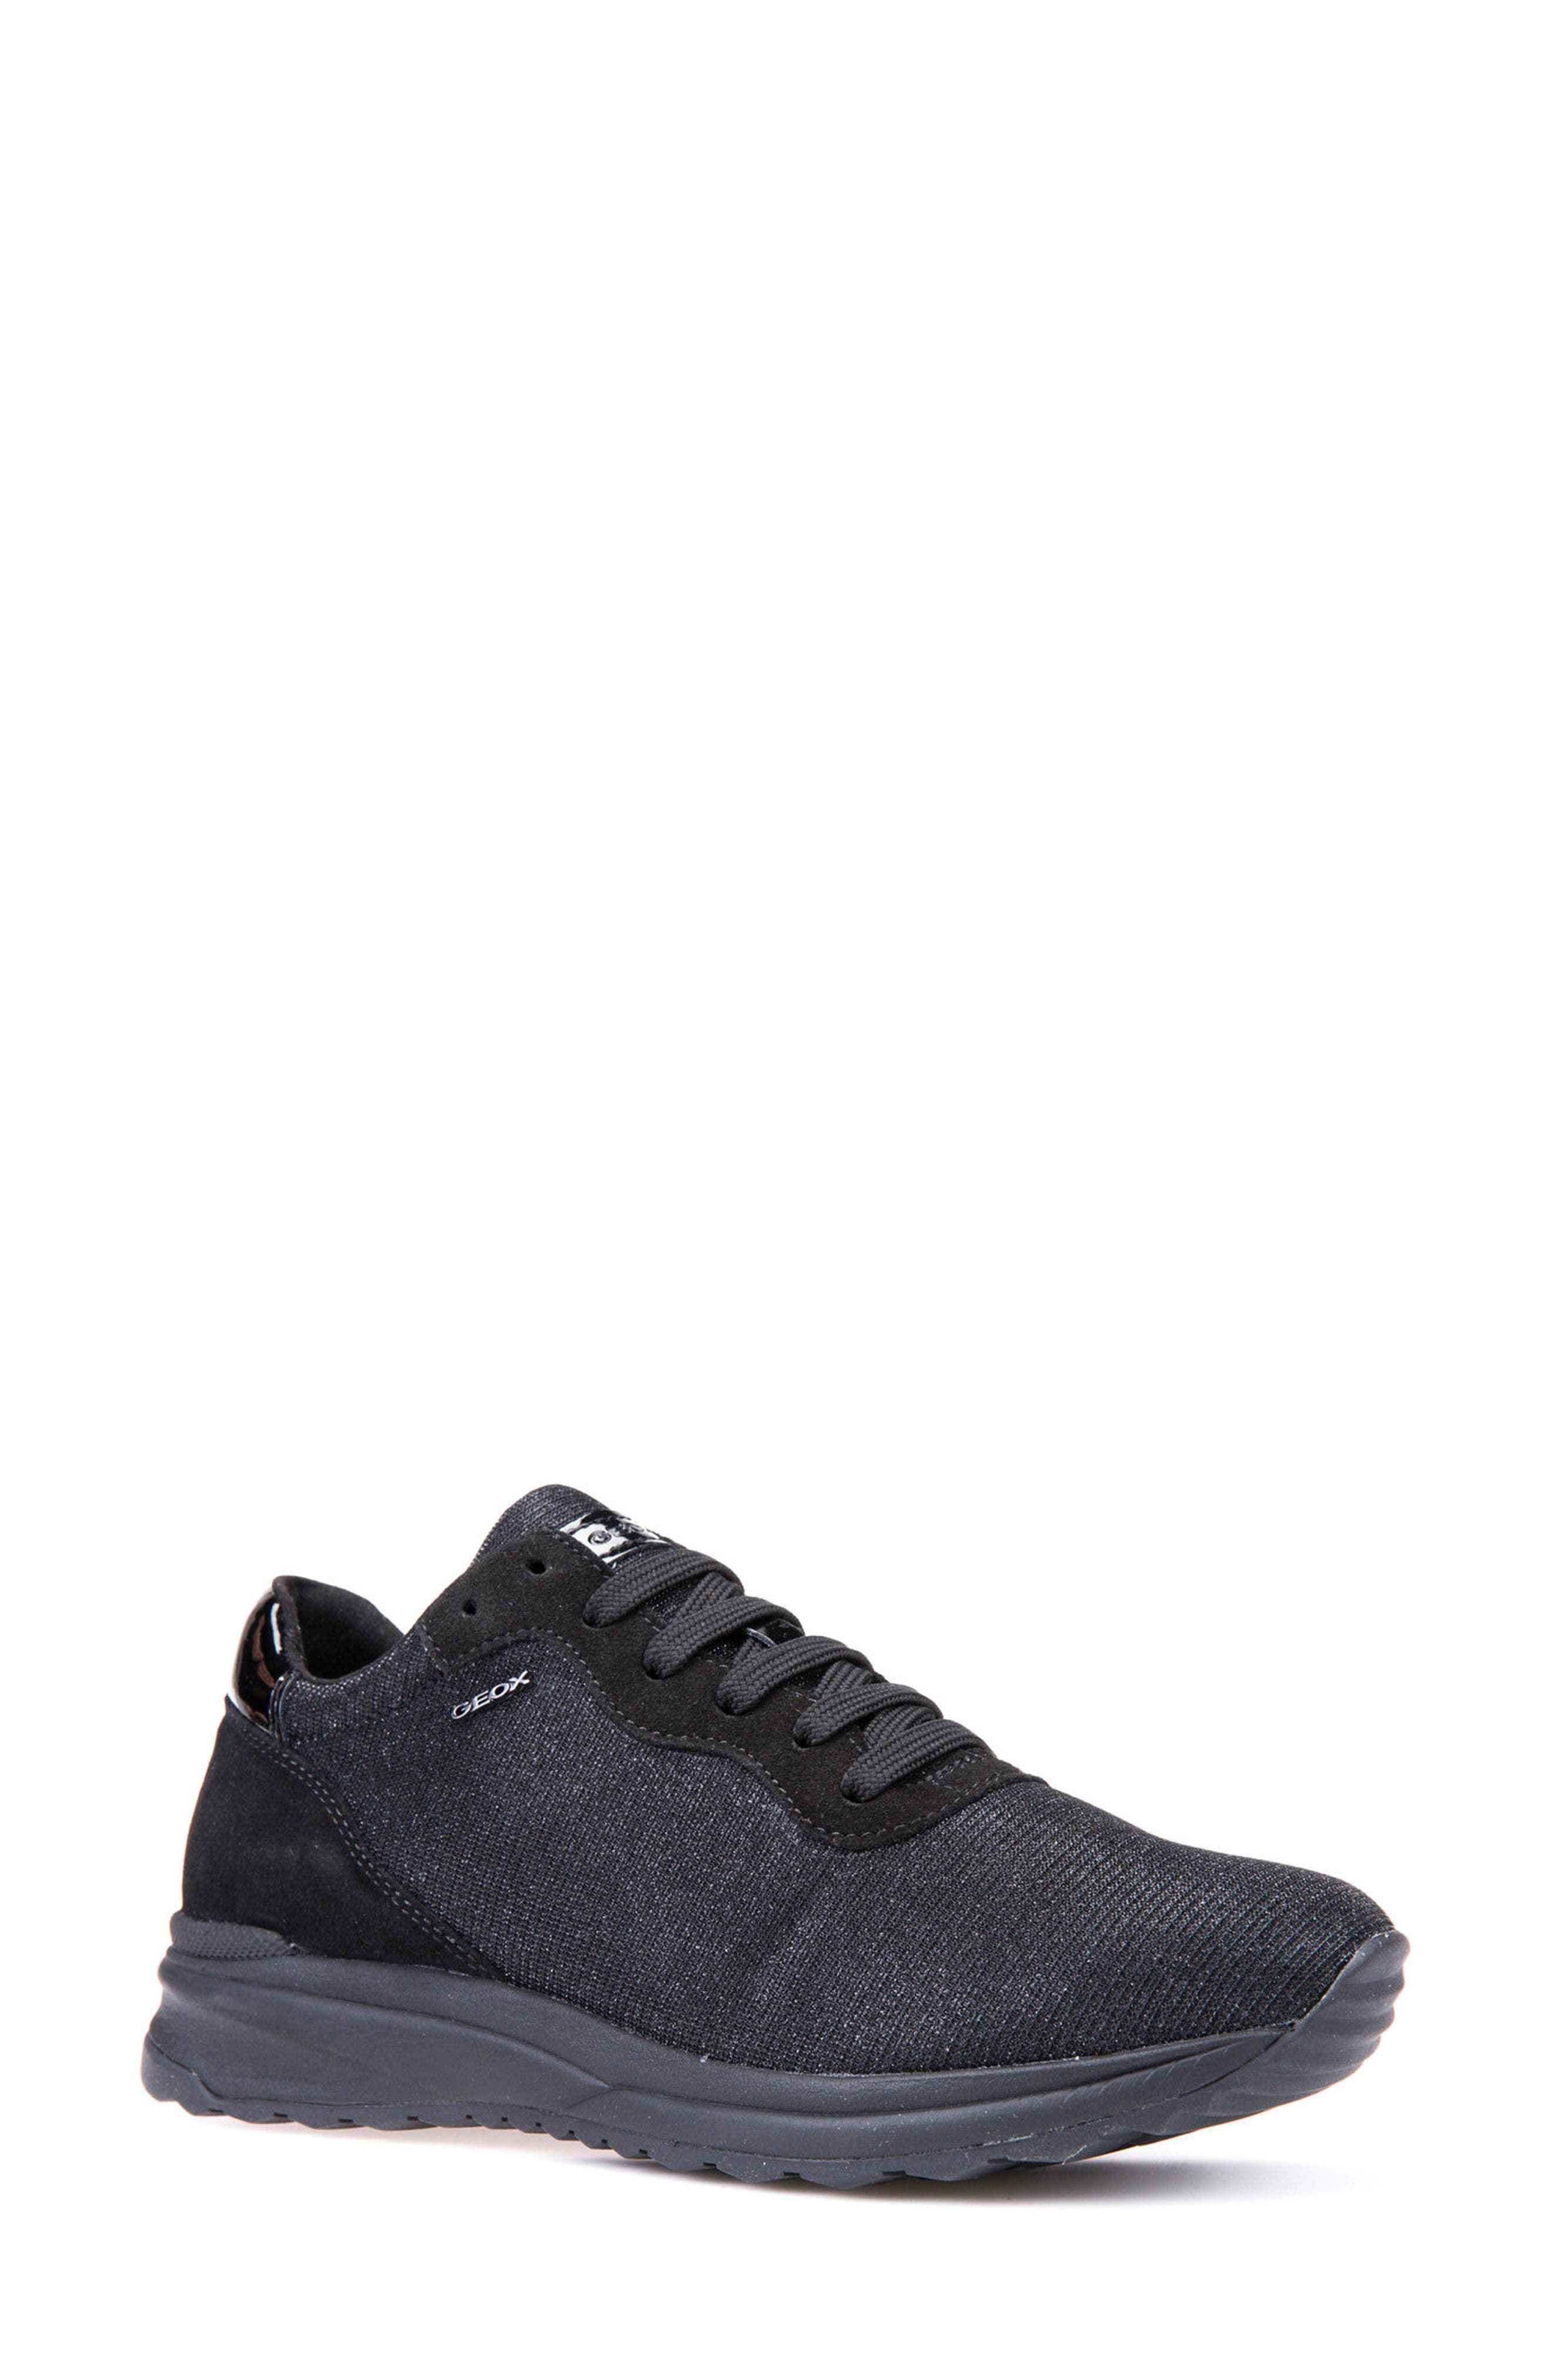 Airell Sneaker,                         Main,                         color, Black Fabric